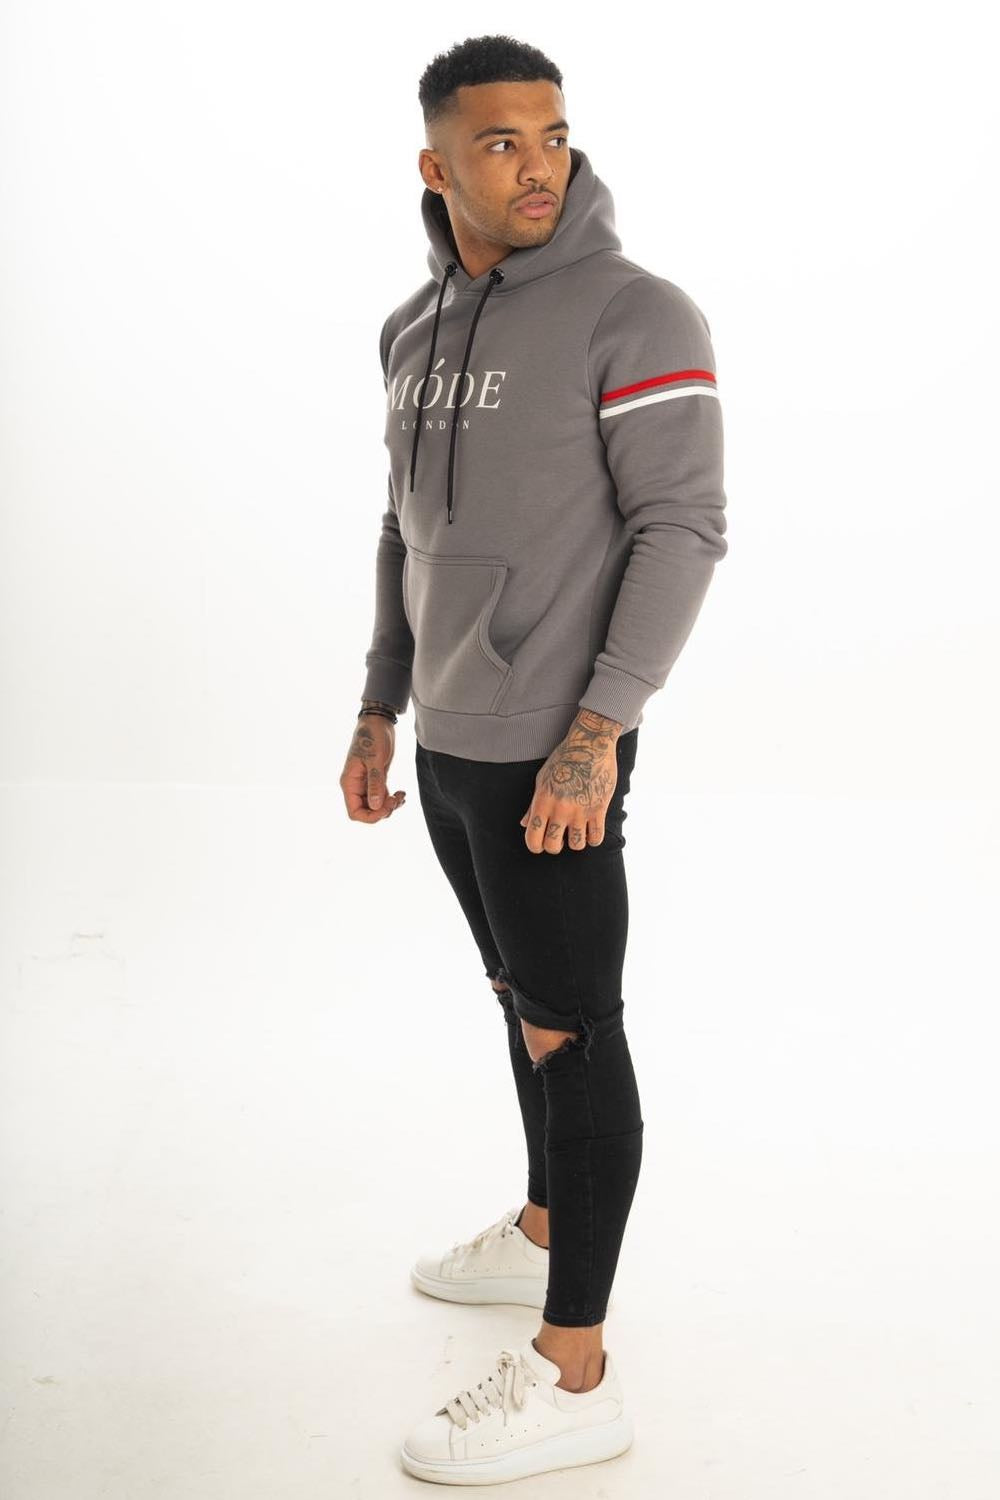 Mode London Mayfair Hoodie - Steel Grey - 2